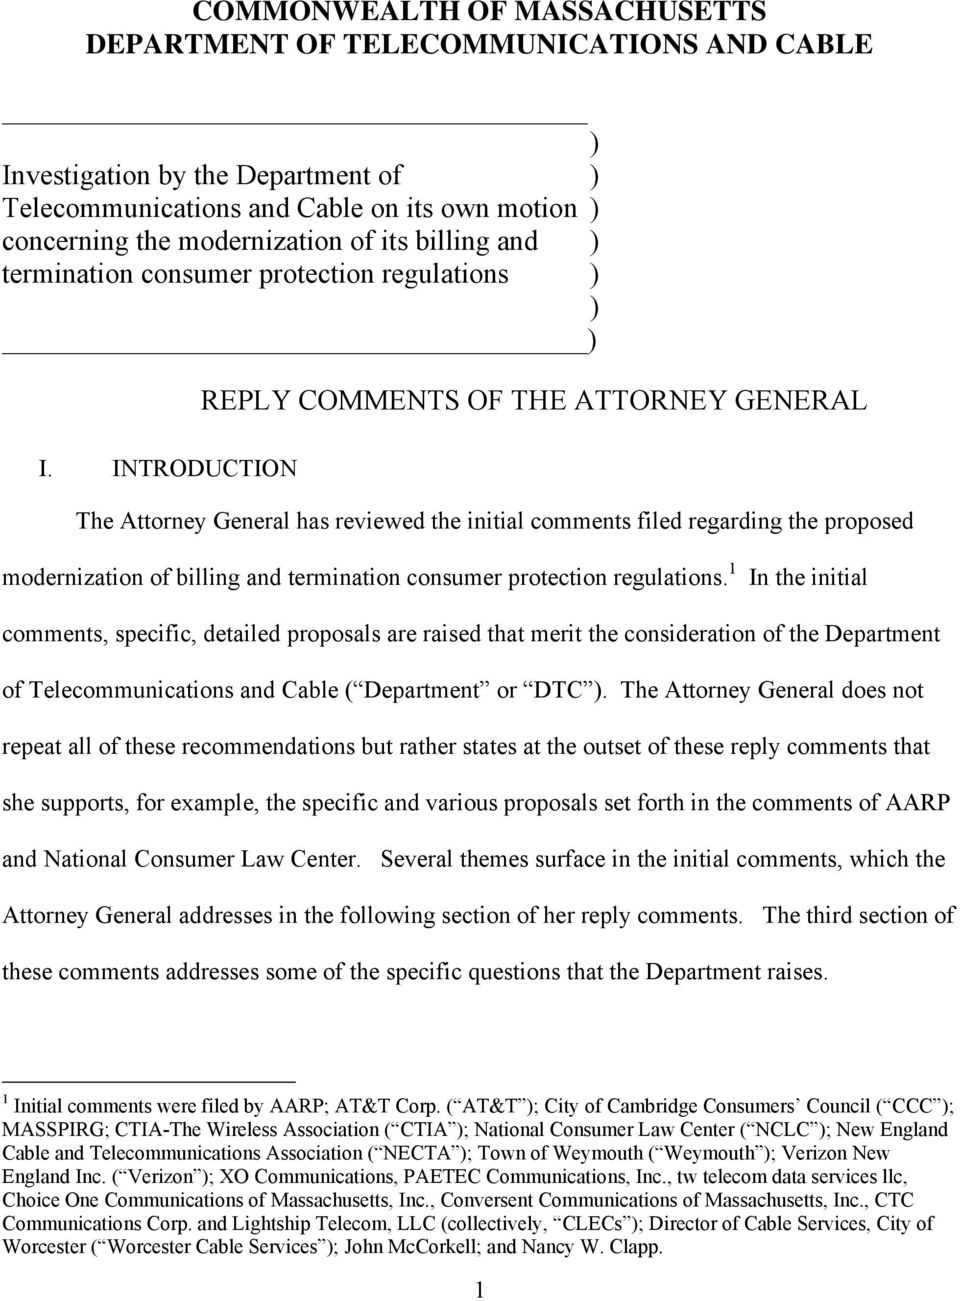 INTRODUCTION REPLY COMMENTS OF THE ATTORNEY GENERAL The Attorney General has reviewed the initial comments filed regarding the proposed modernization of billing and termination consumer protection